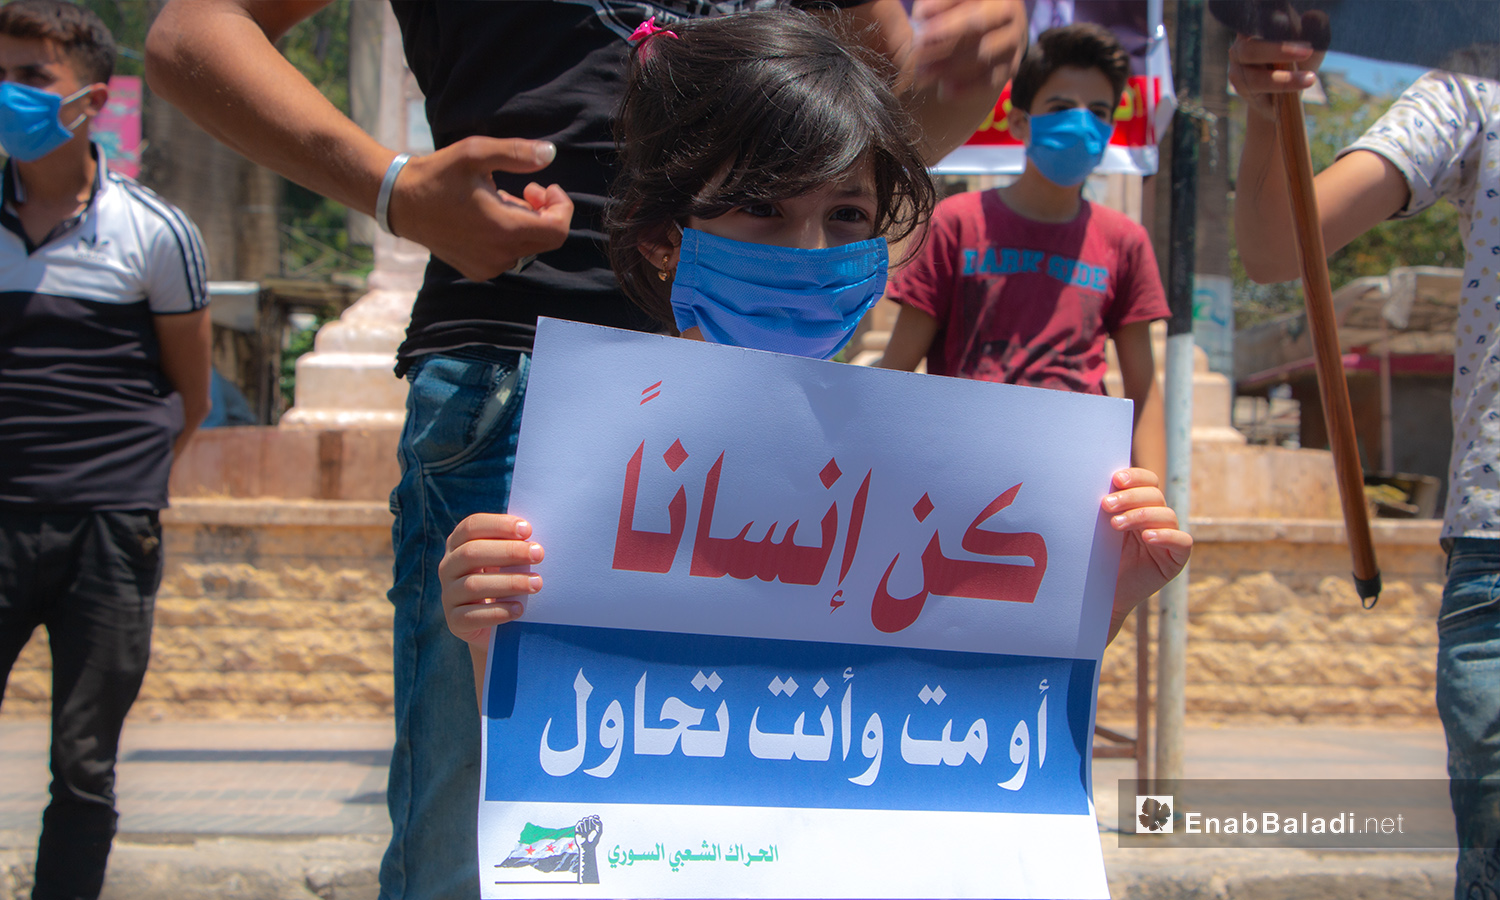 A child holding a sign at a protest stand in Idlib city's Clock Square – 10 July 2020 (Enab Baladi / Anas al-Khouli)